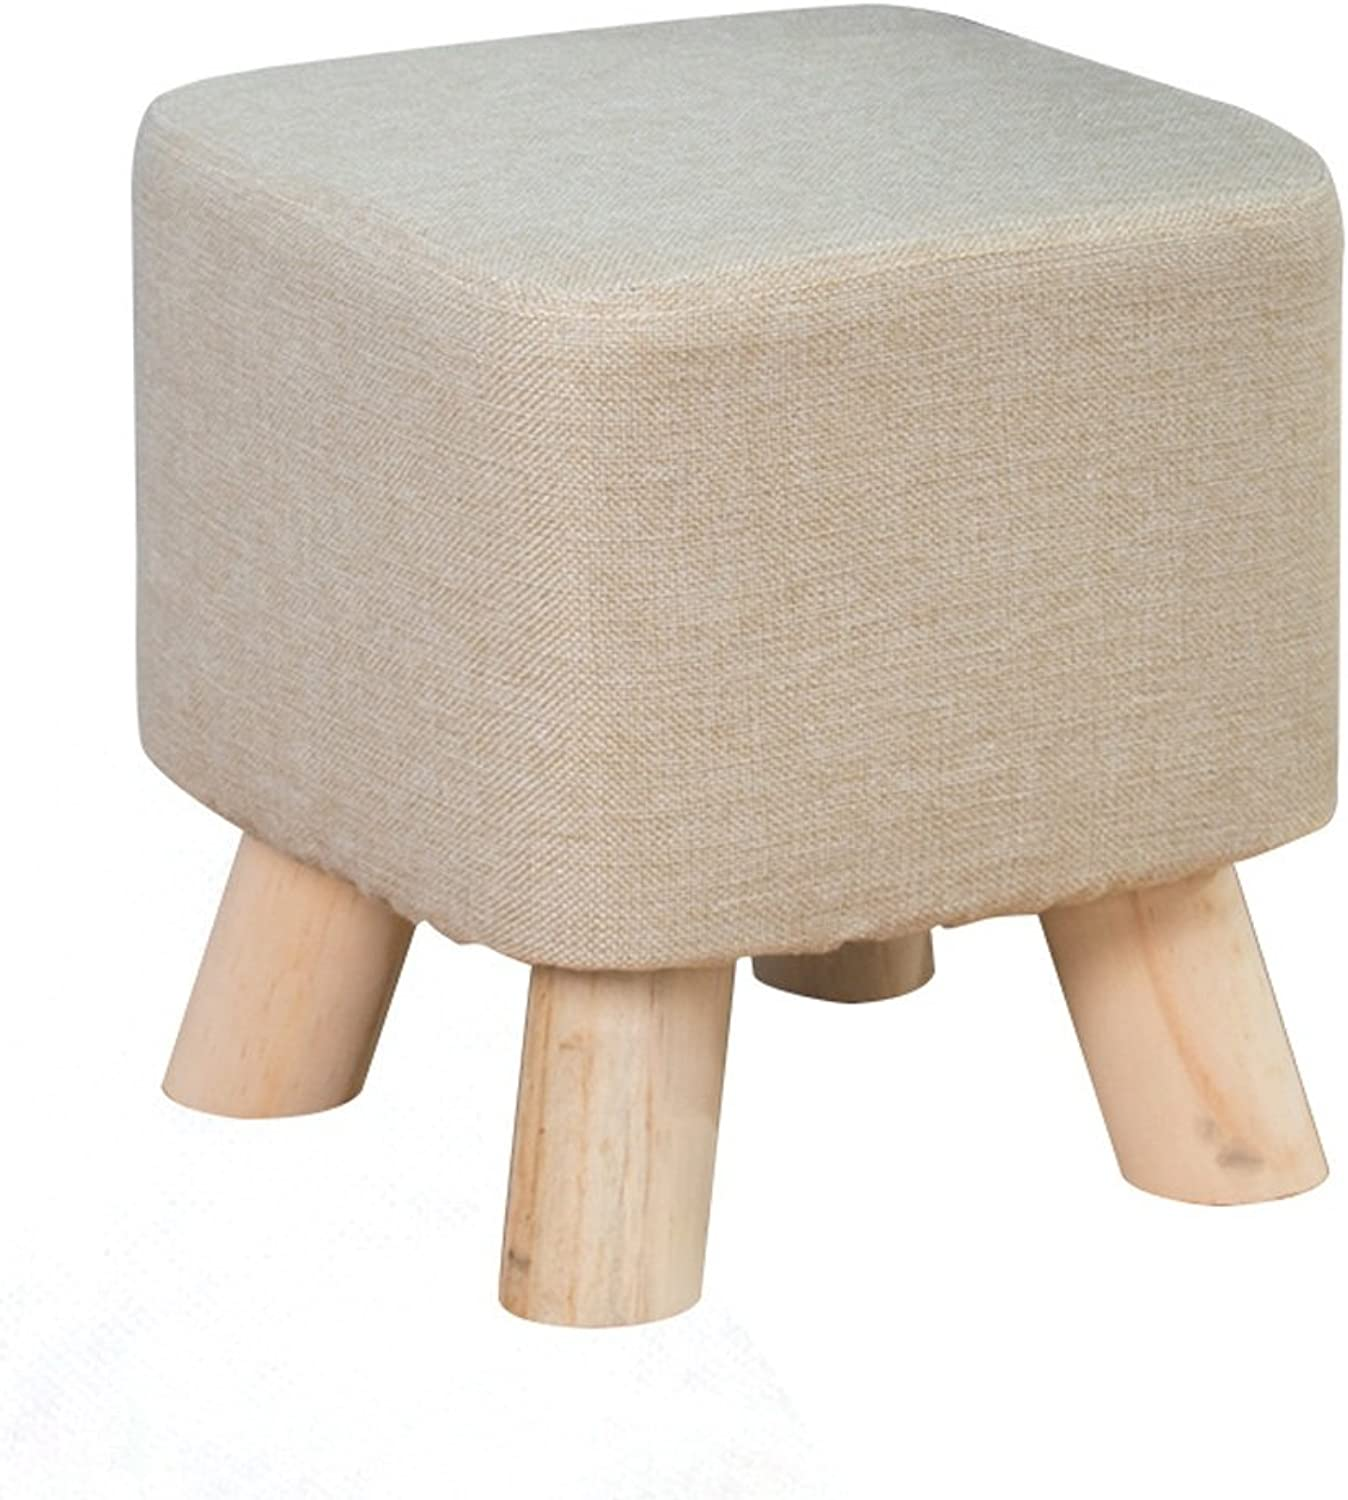 Solid Wood shoes Changing Stools Fashionable Household Low Square Stools Solid Wood Chair Foot (color   Beige)